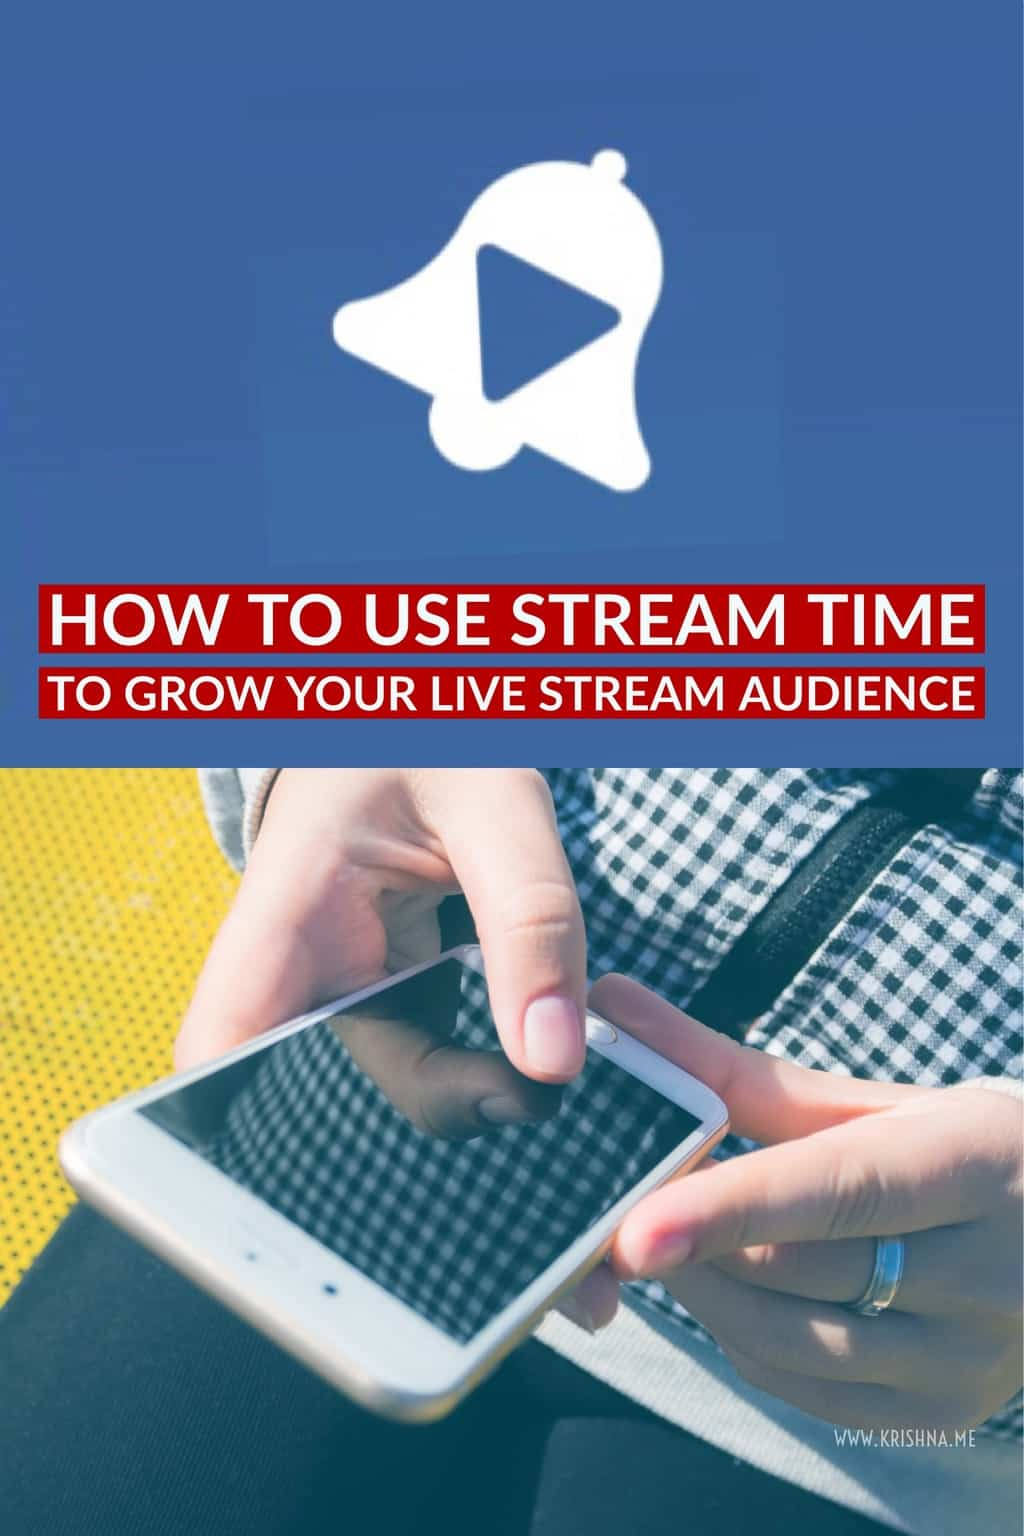 A tutorial on how to use Stream Time to grow your live stream audience and find live streams to watch